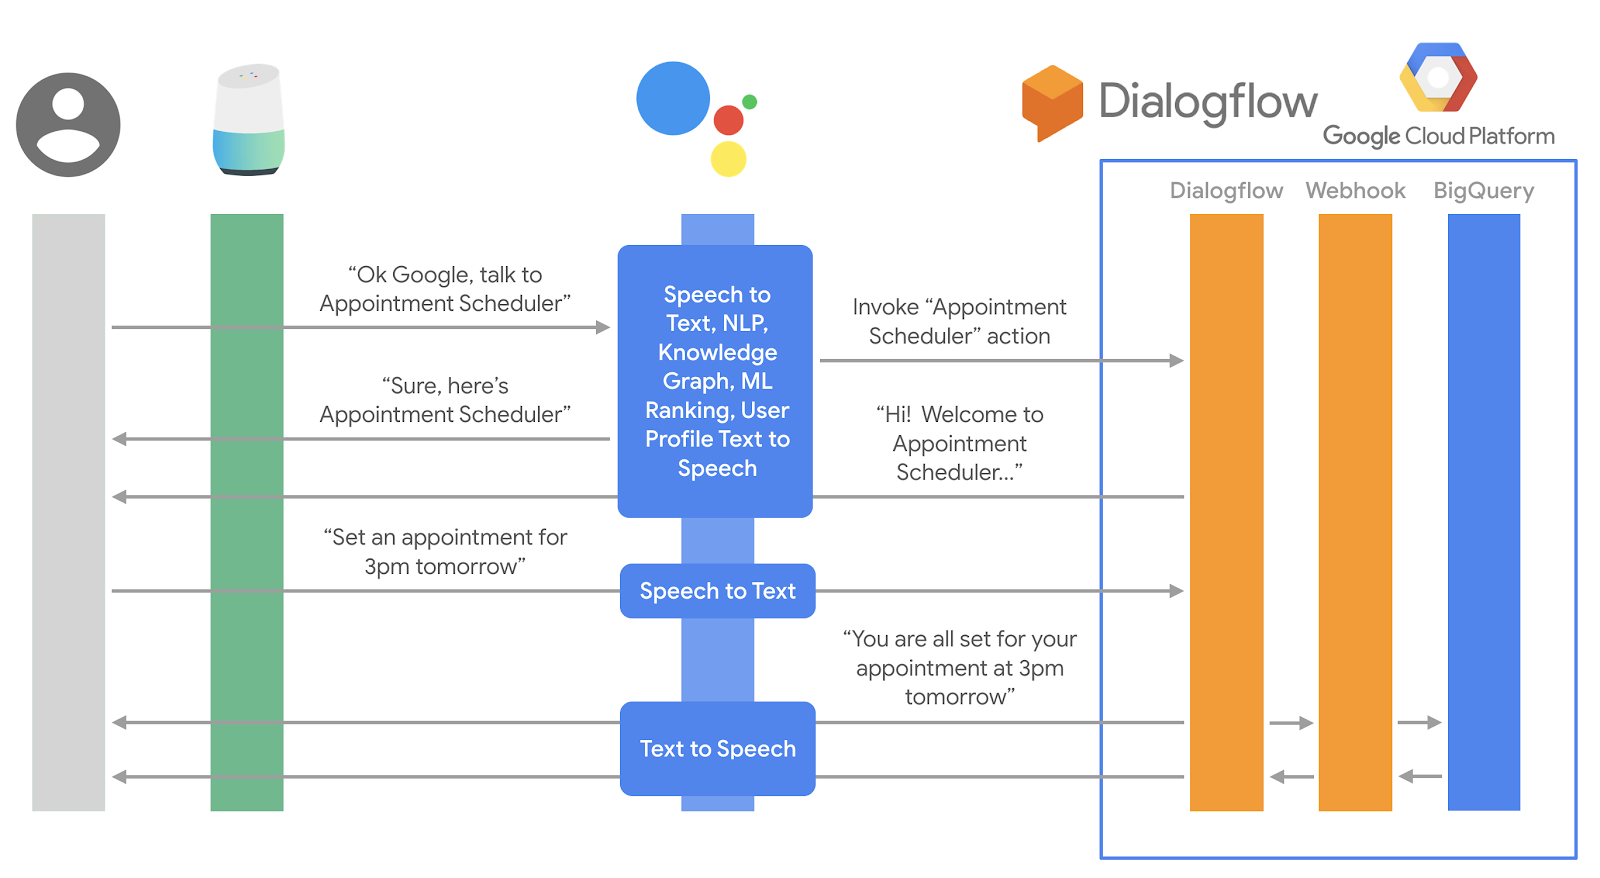 How to integrate Dialogflow with BigQuery